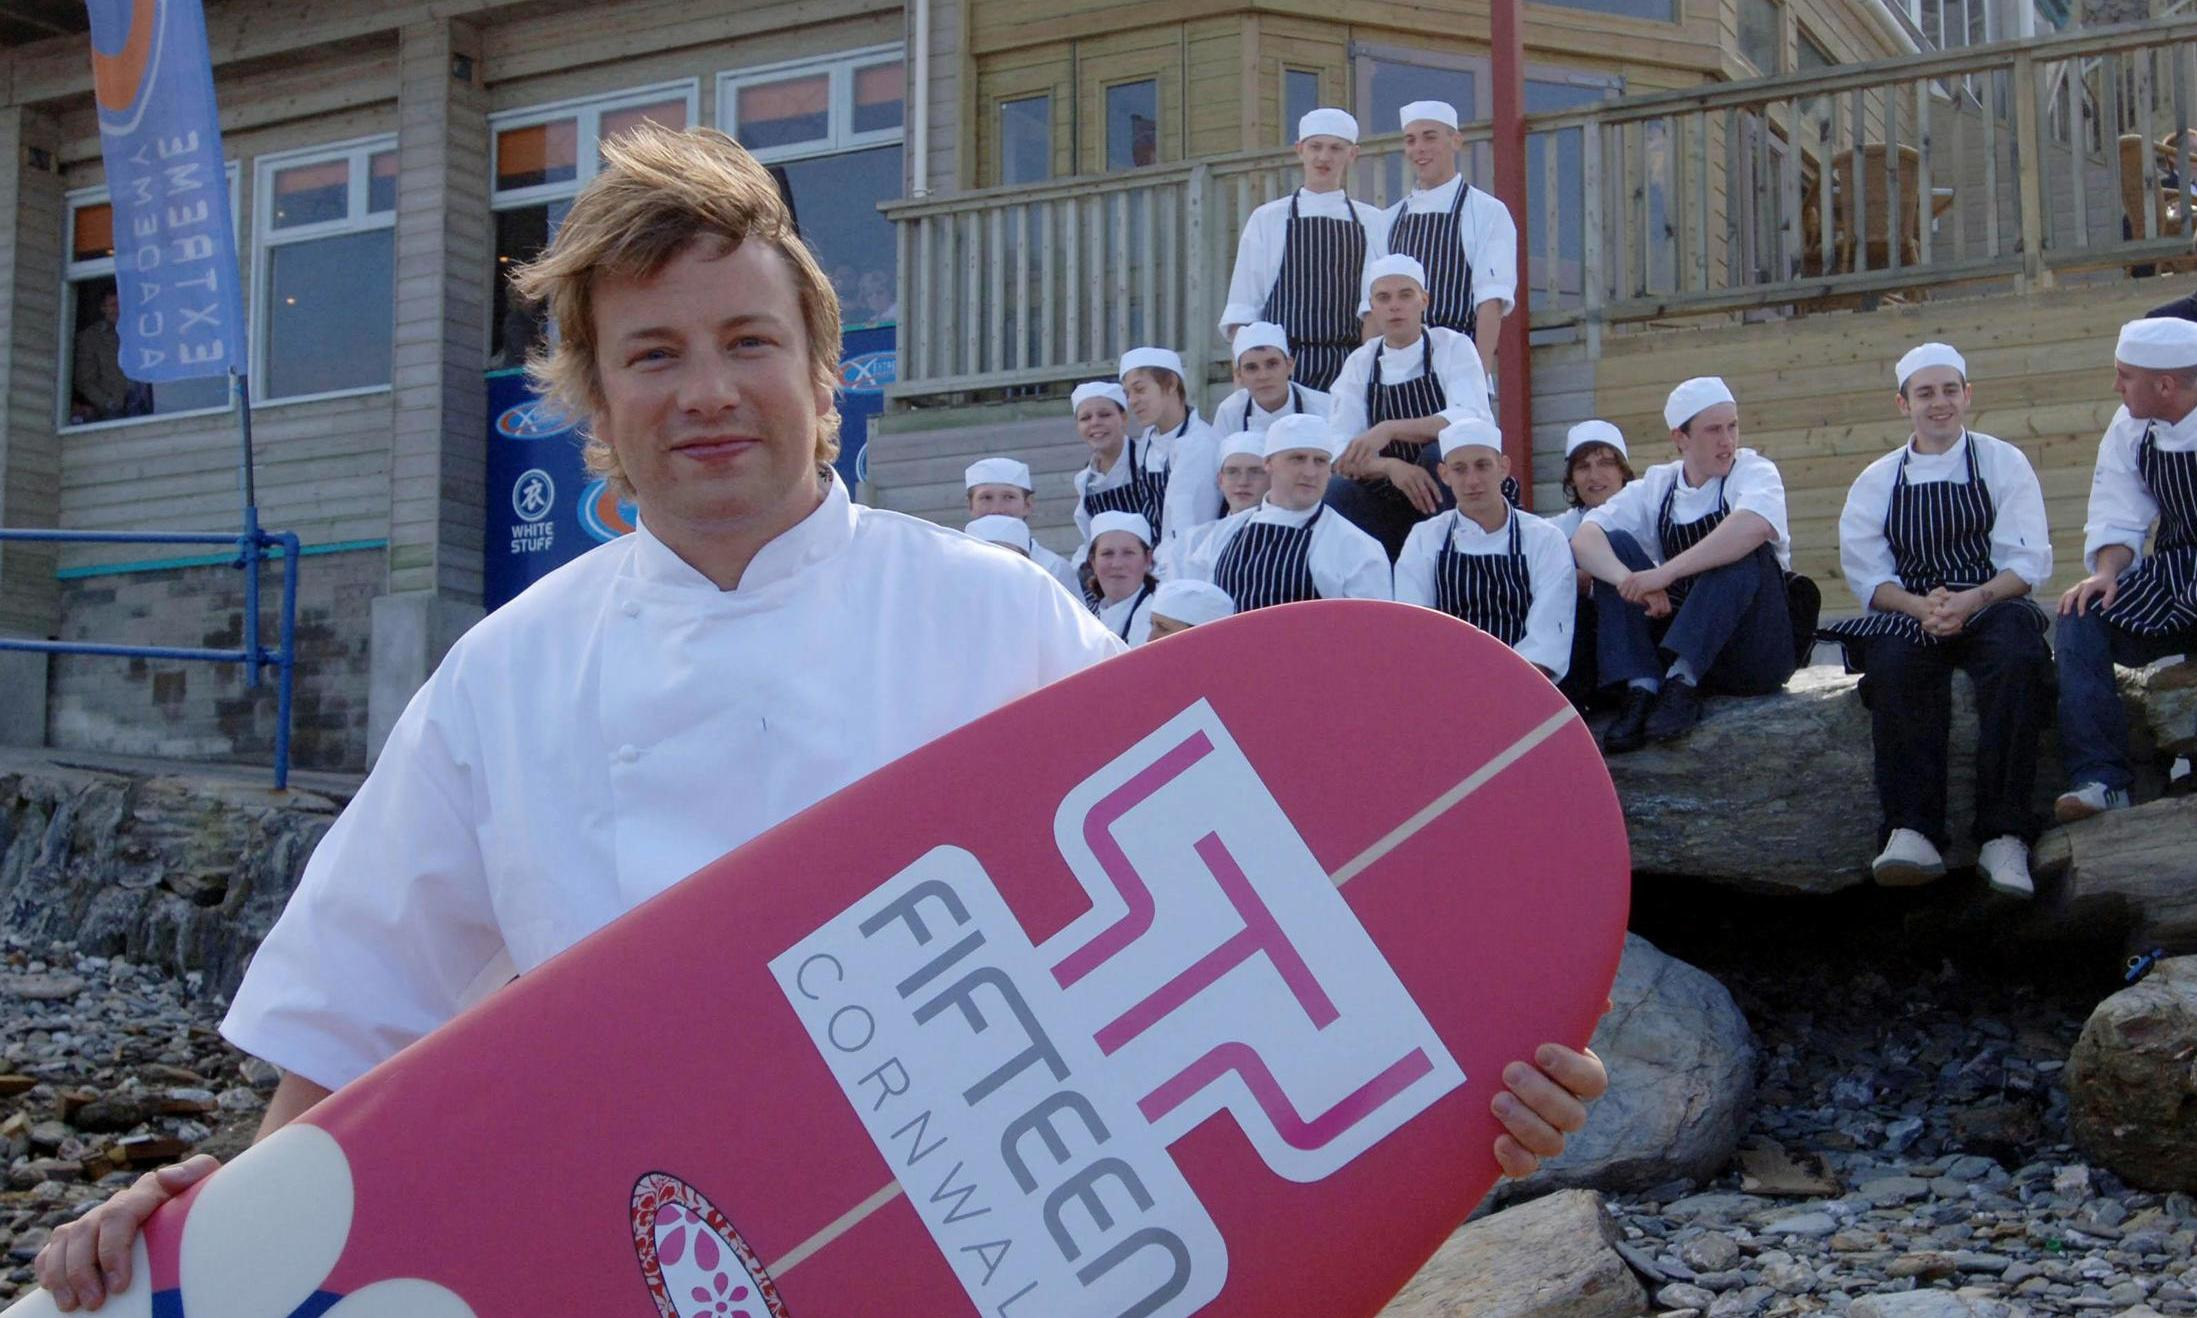 Jamie Oliver's Fifteen Cornwall closes with the loss of 100 jobs